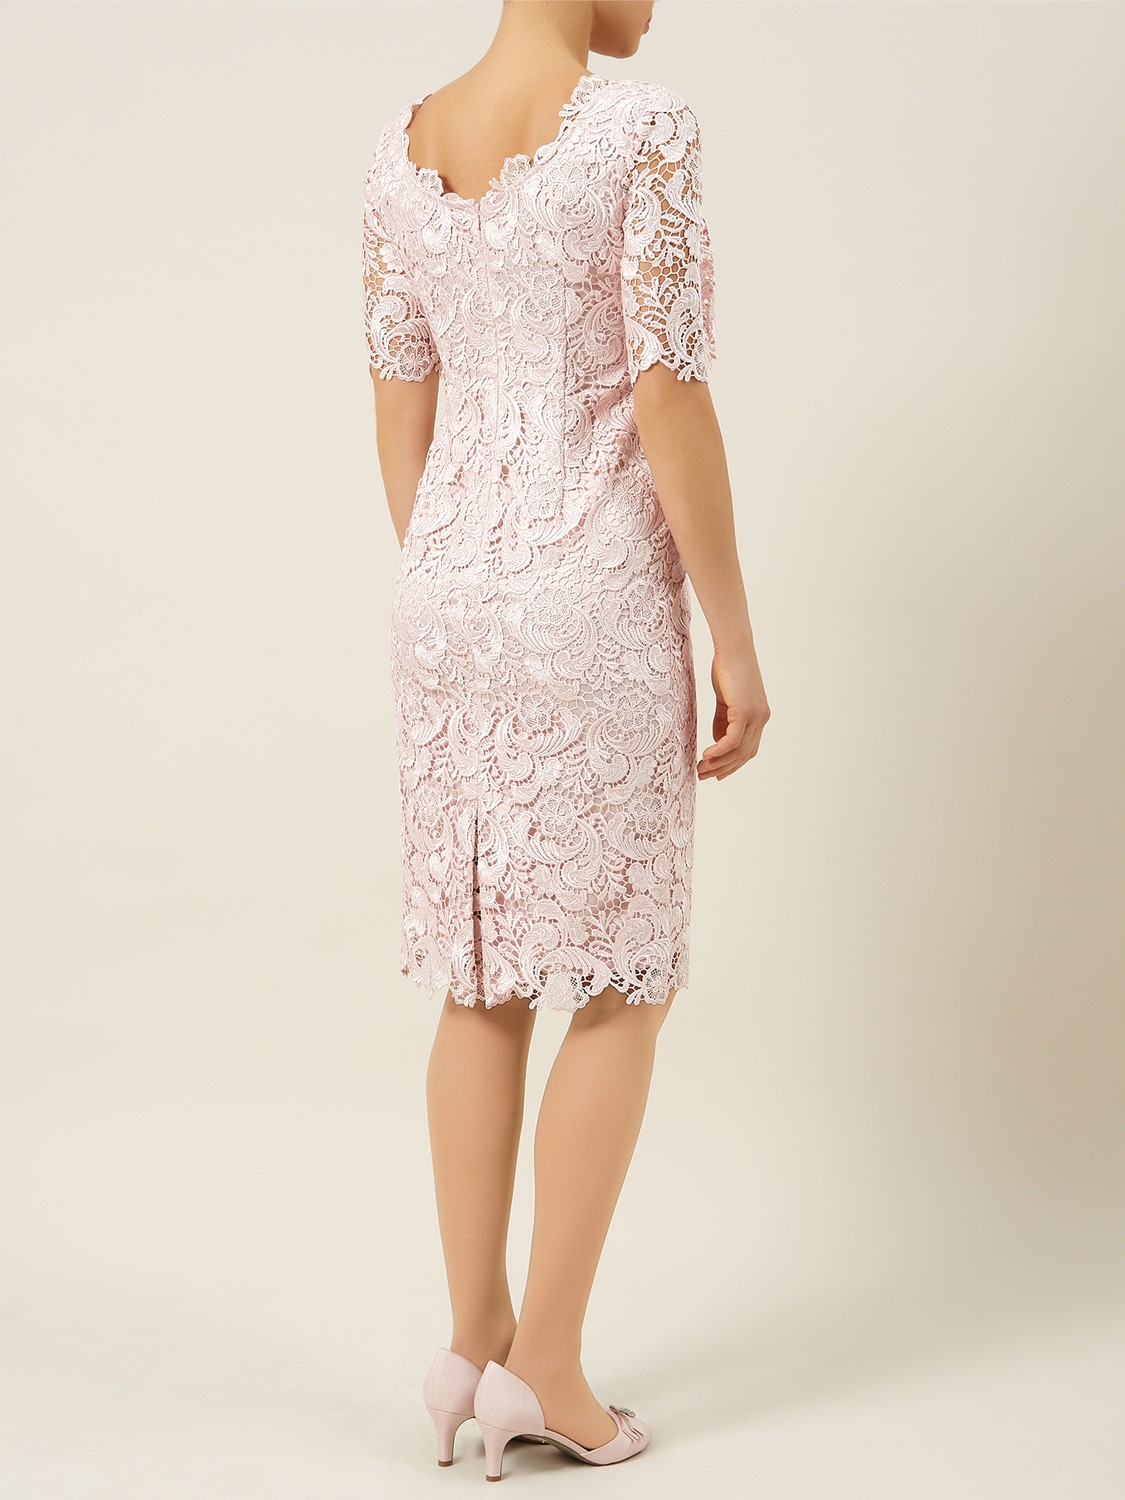 a0c4f4808305 Jacques Vert Luxury Lace Dress in Natural - Lyst